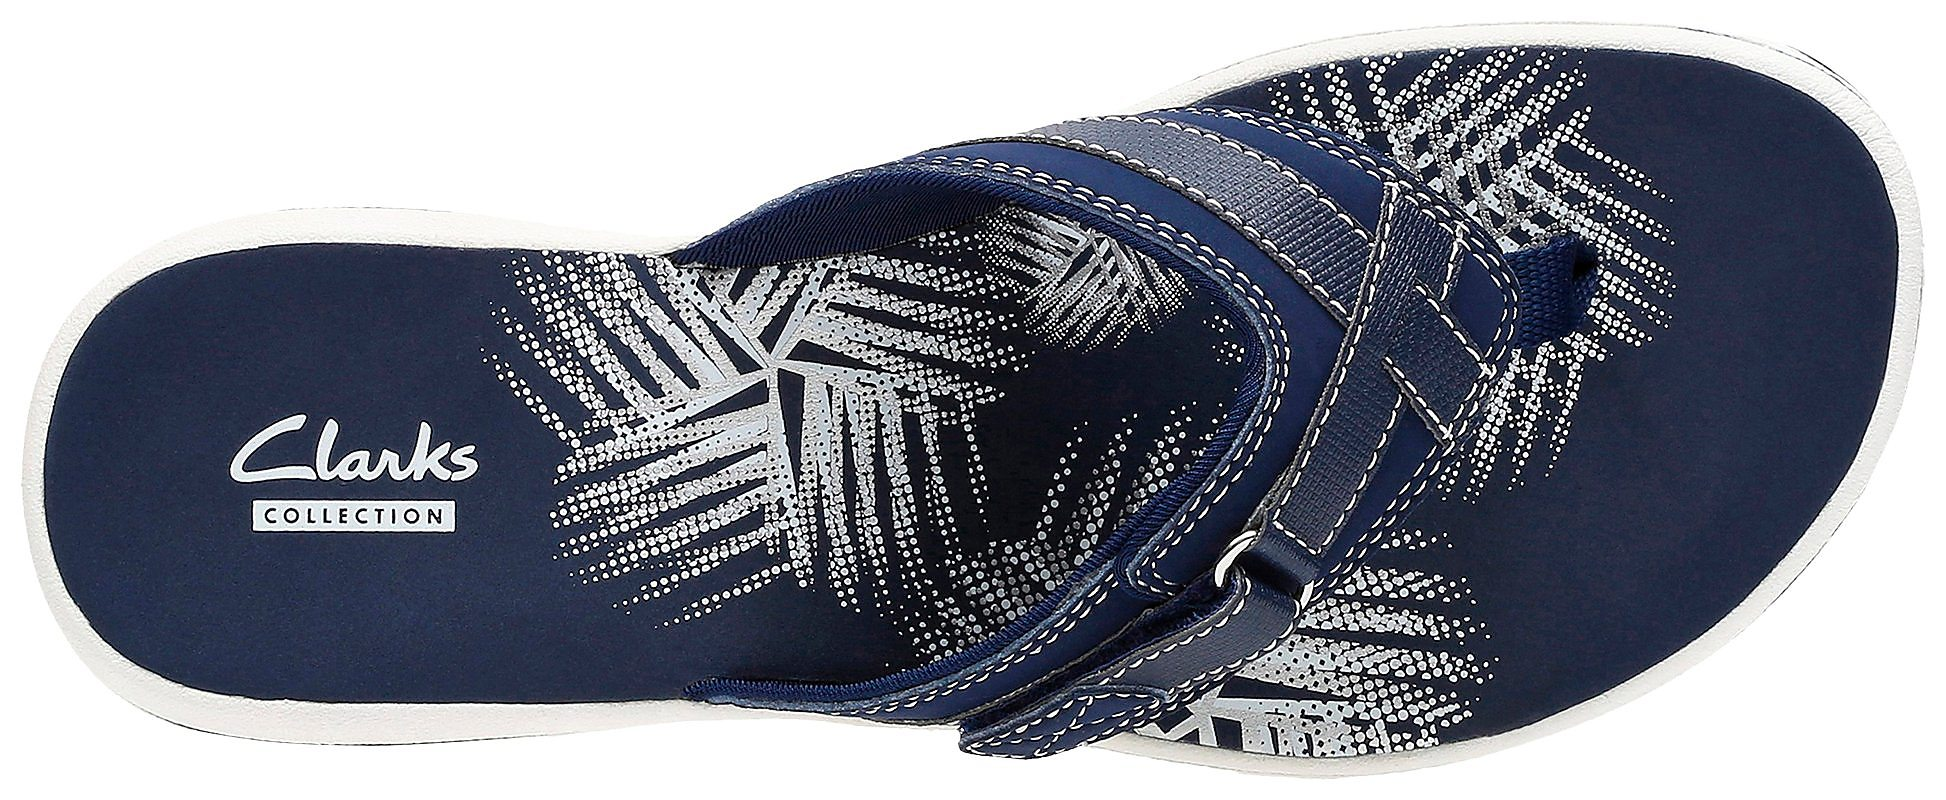 Clarks-Womens-Breeze-Sea-Flip-Flops-Comfort-Summer-Sandals thumbnail 12